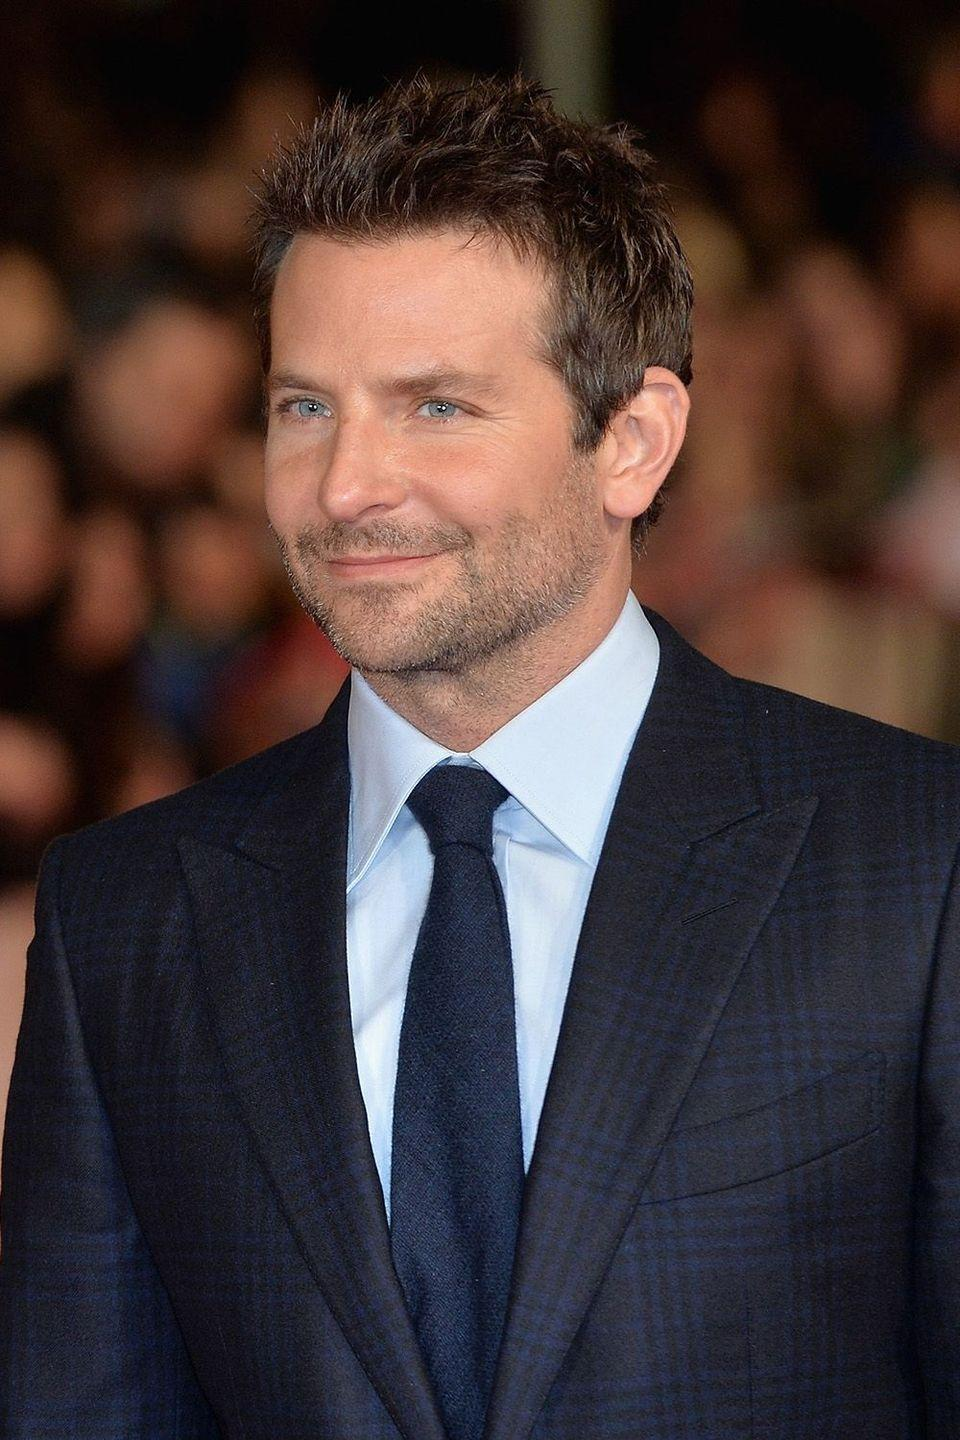 """<p>The actor discussed his sobriety in his <a href=""""http://www.gq.com/story/bradley-cooper-cover-story-january-2014"""" rel=""""nofollow noopener"""" target=""""_blank"""" data-ylk=""""slk:GQ"""" class=""""link rapid-noclick-resp""""><em>GQ</em></a> cover story back in 2013, explaining that at the age of 29 he felt """"if I continued it, I was really going to sabotage my whole life.""""</p>"""